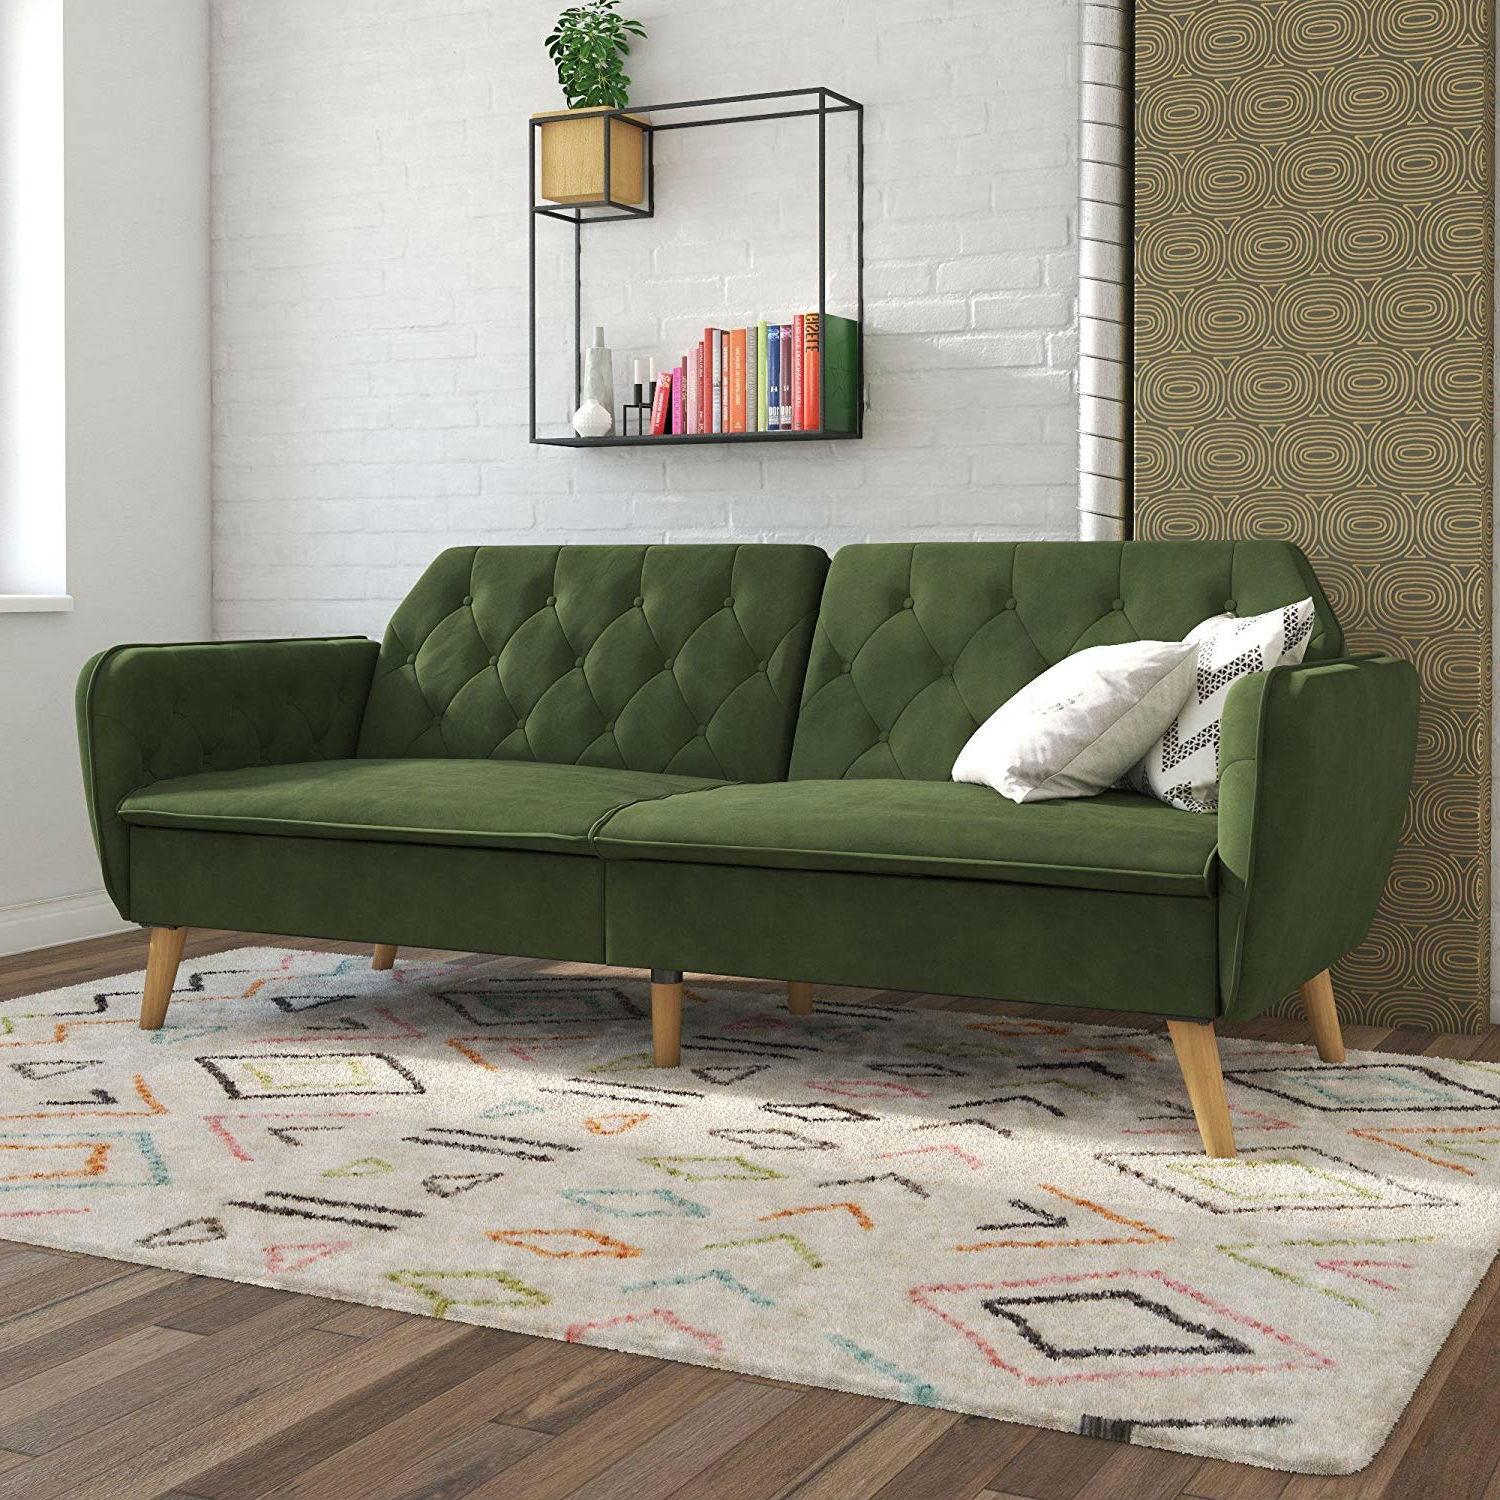 Memory Foam Futon Sofa Bed With Green